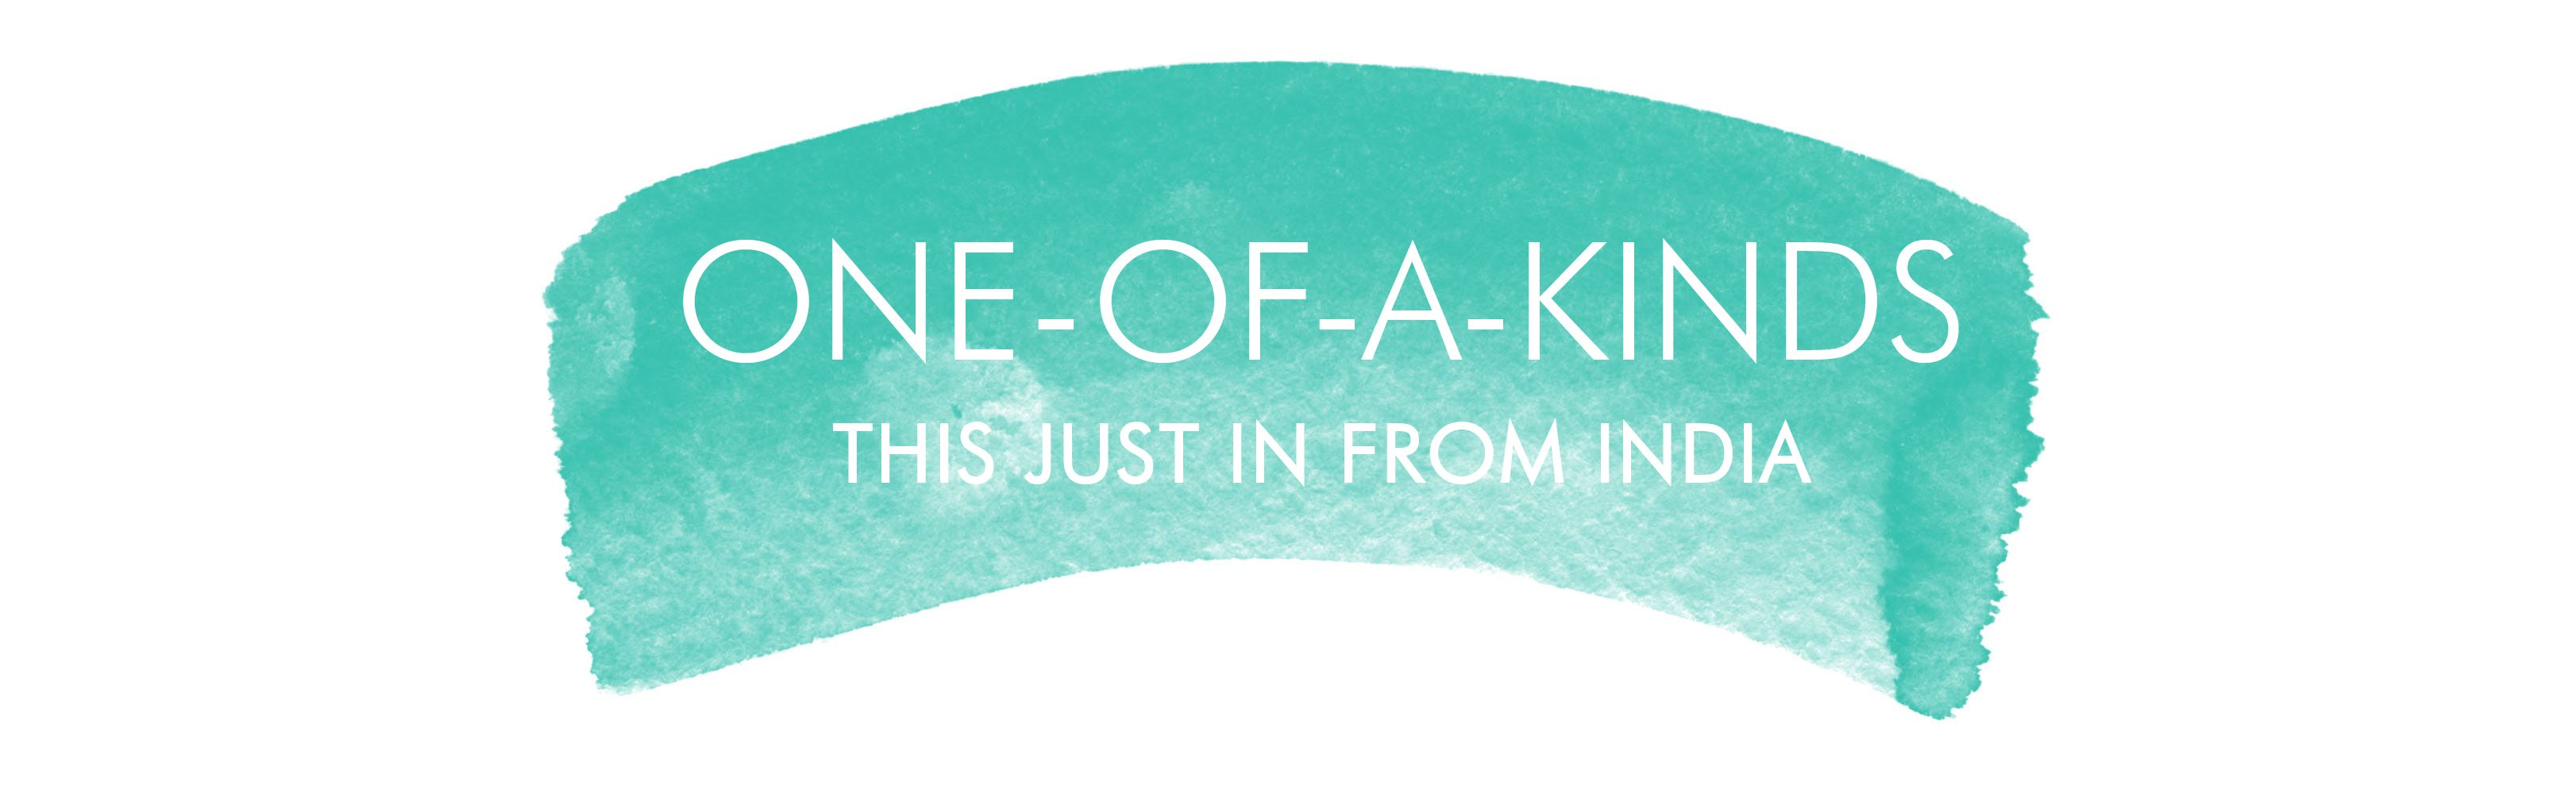 ONE-OF-A-KINDS blog post header (sethia)